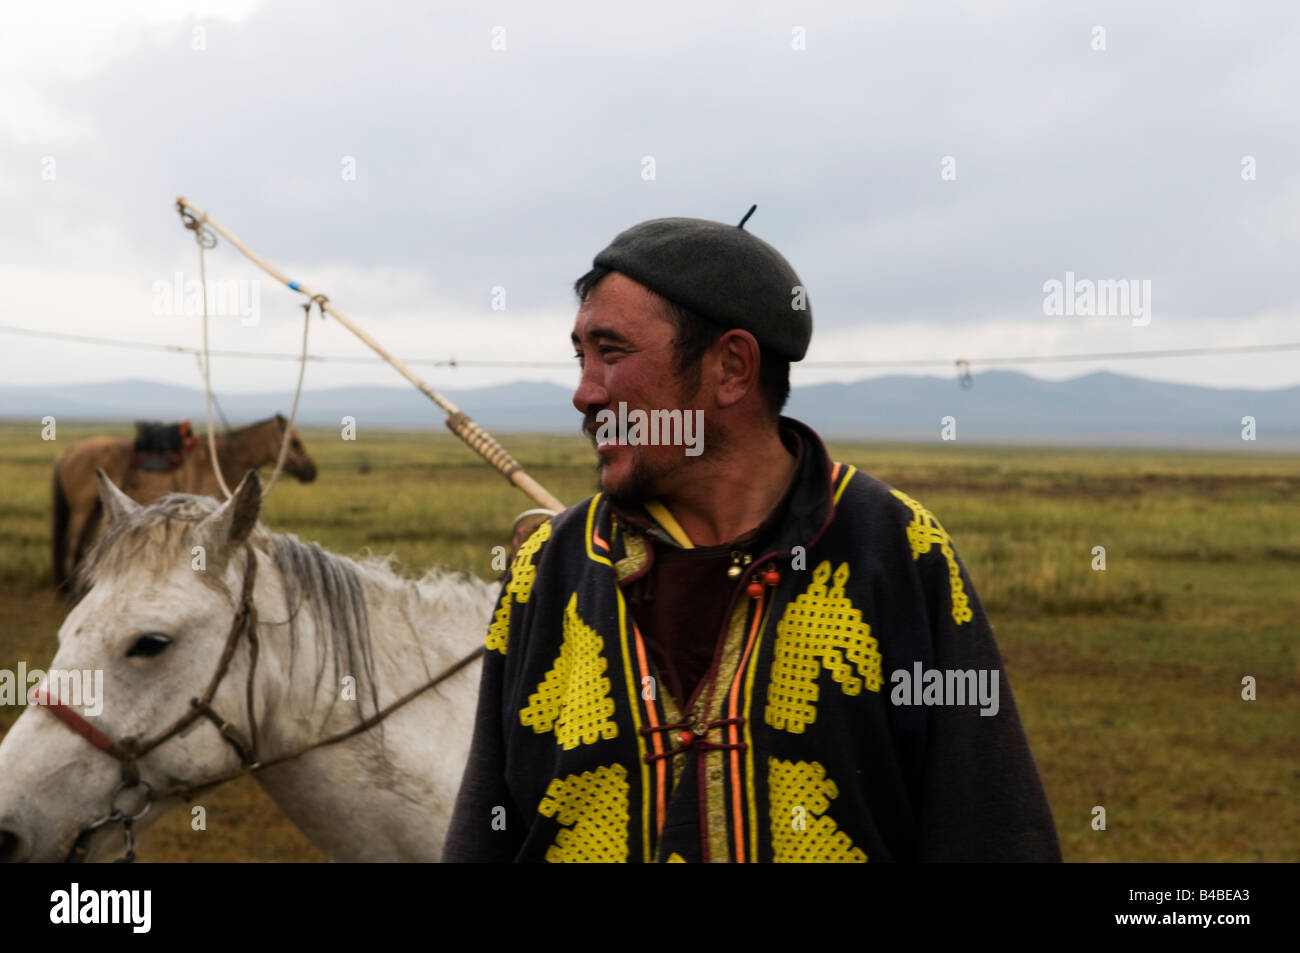 a-mongolian-herder-with-his-horse-in-the